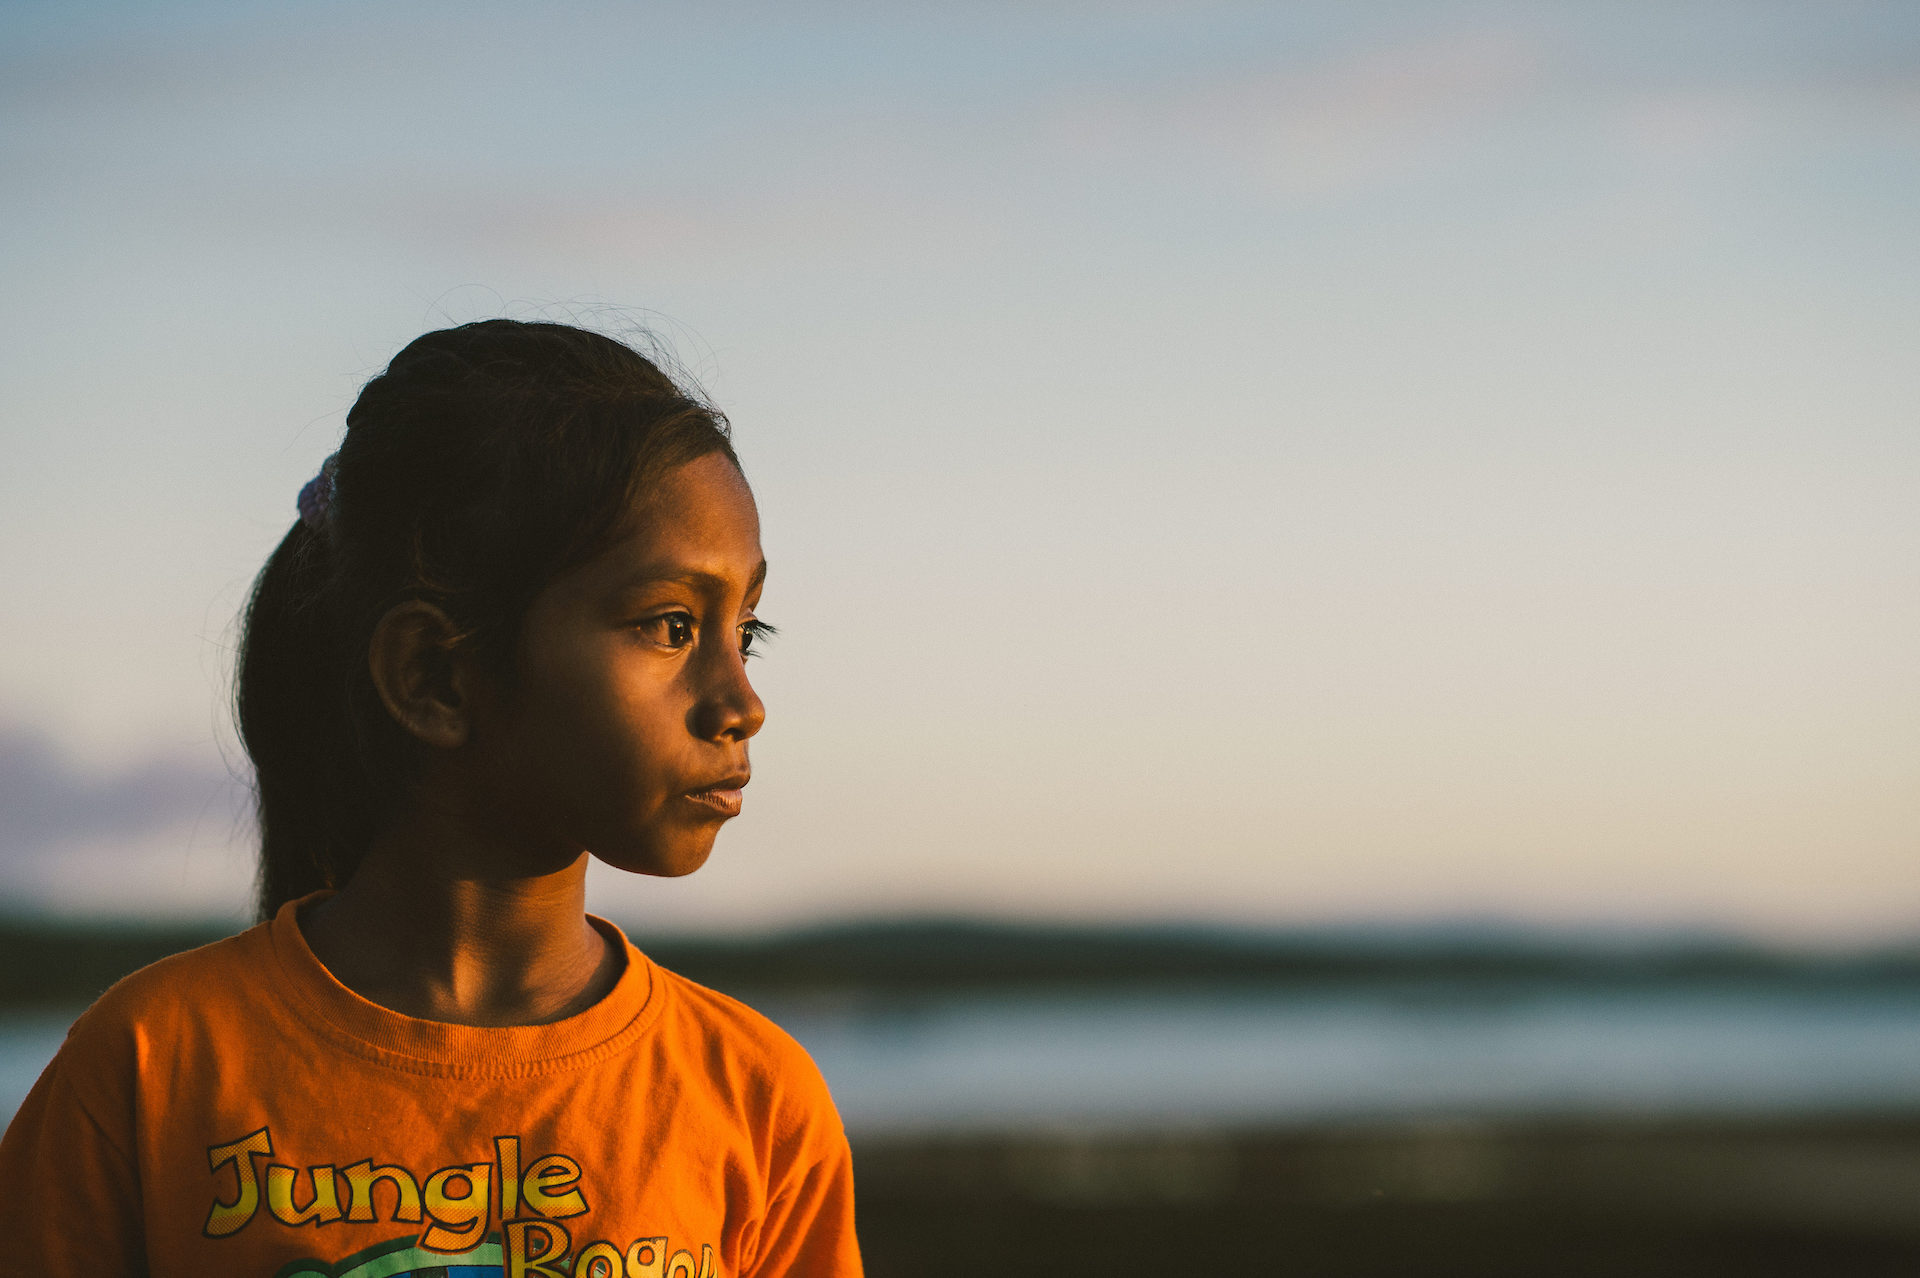 An Indonesian girl wearing an orange t-shirt and a pony tail looks at the sunset.